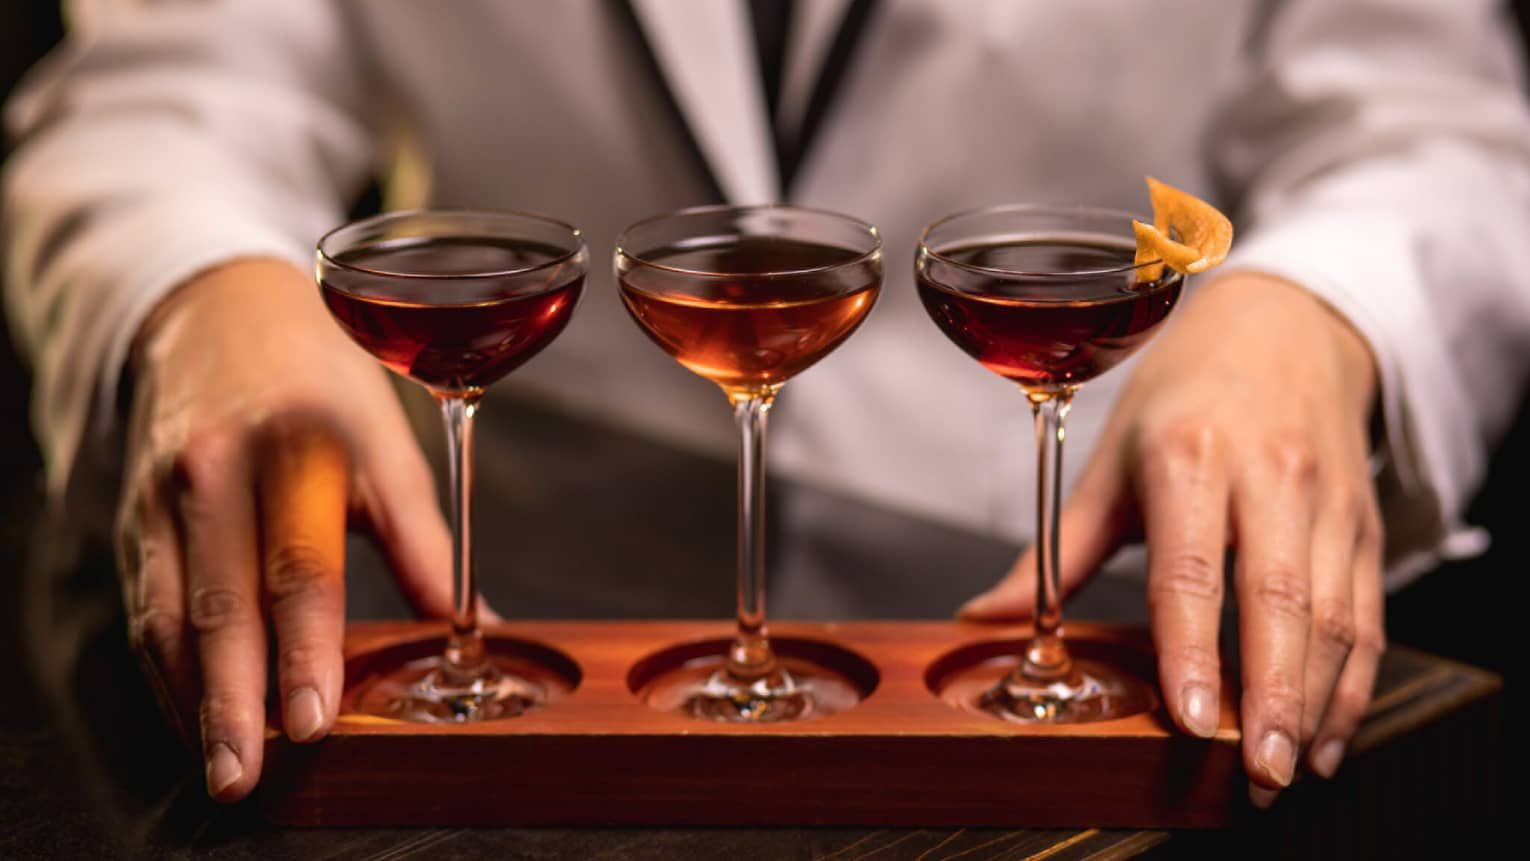 A bartender displays three cocktails in glasses